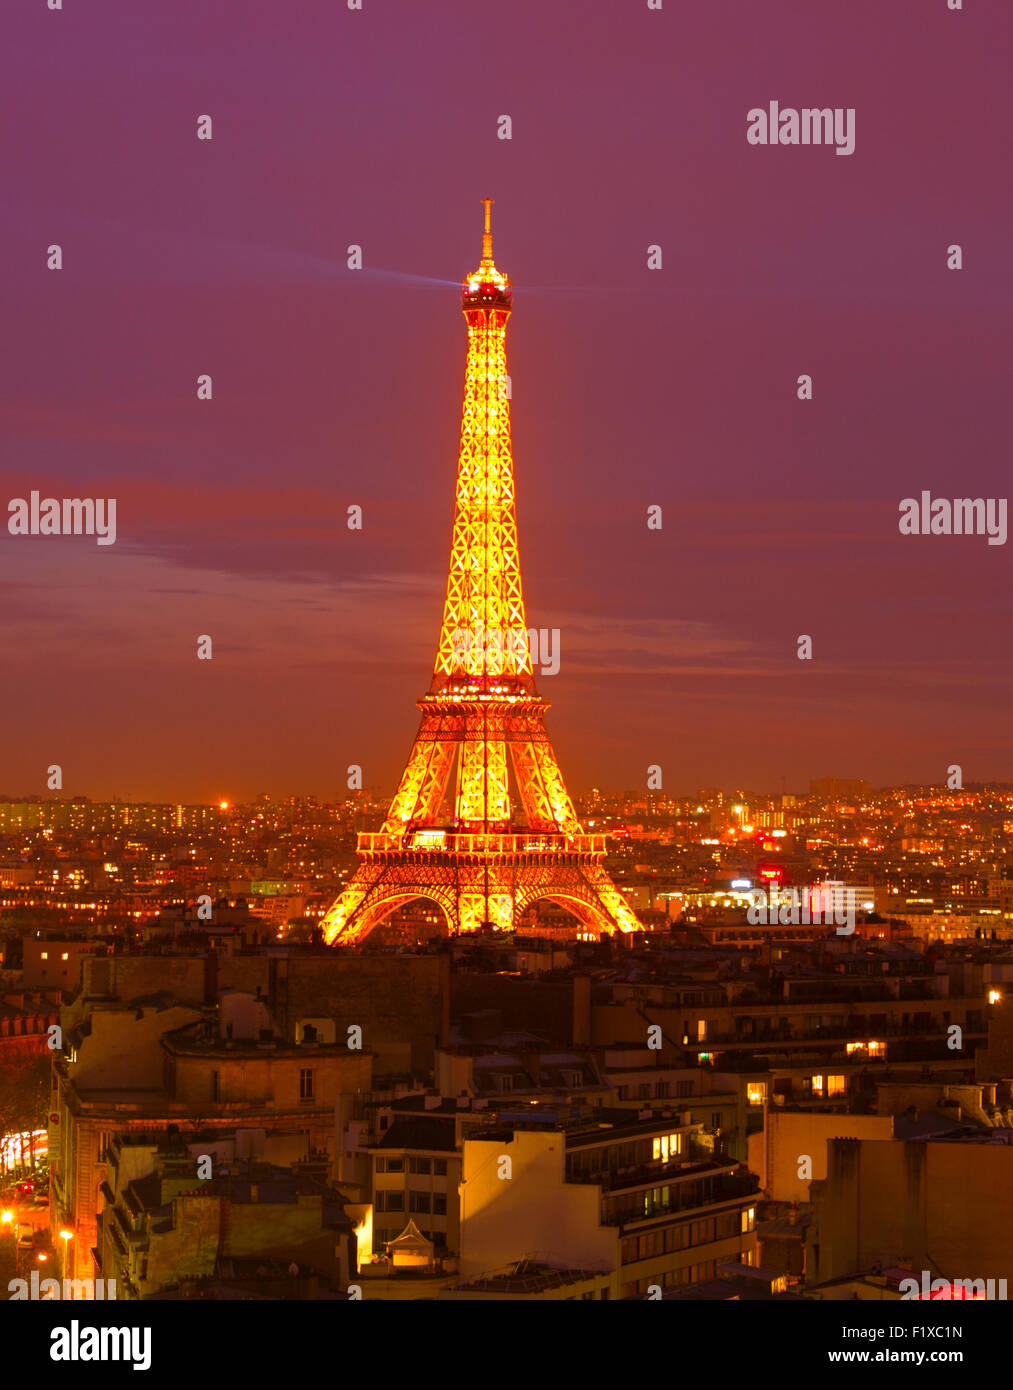 Eiffel Tower Light Performance Show at night. - Stock Image